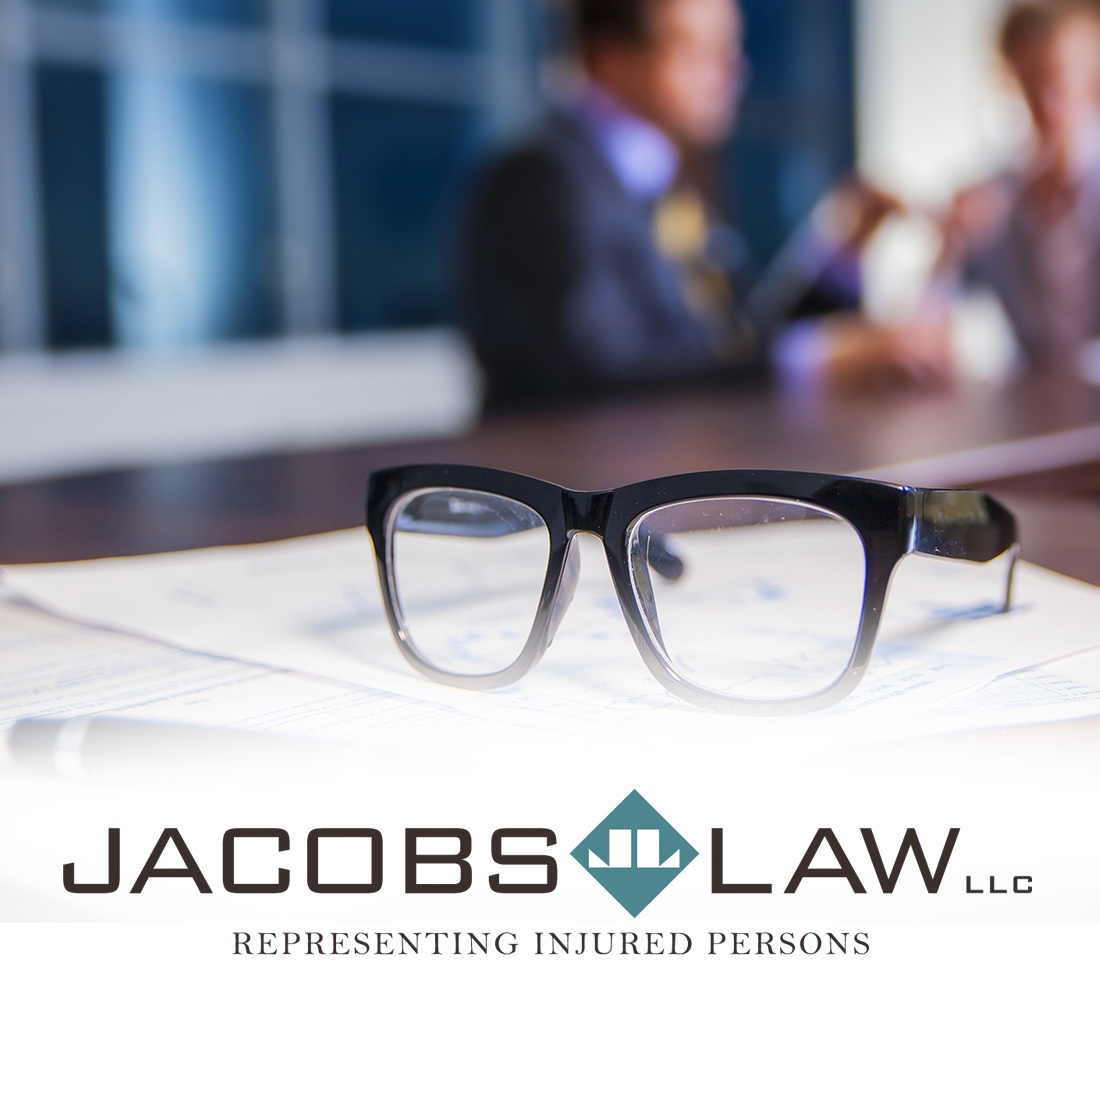 Jacobs Law - Branding and Website Design